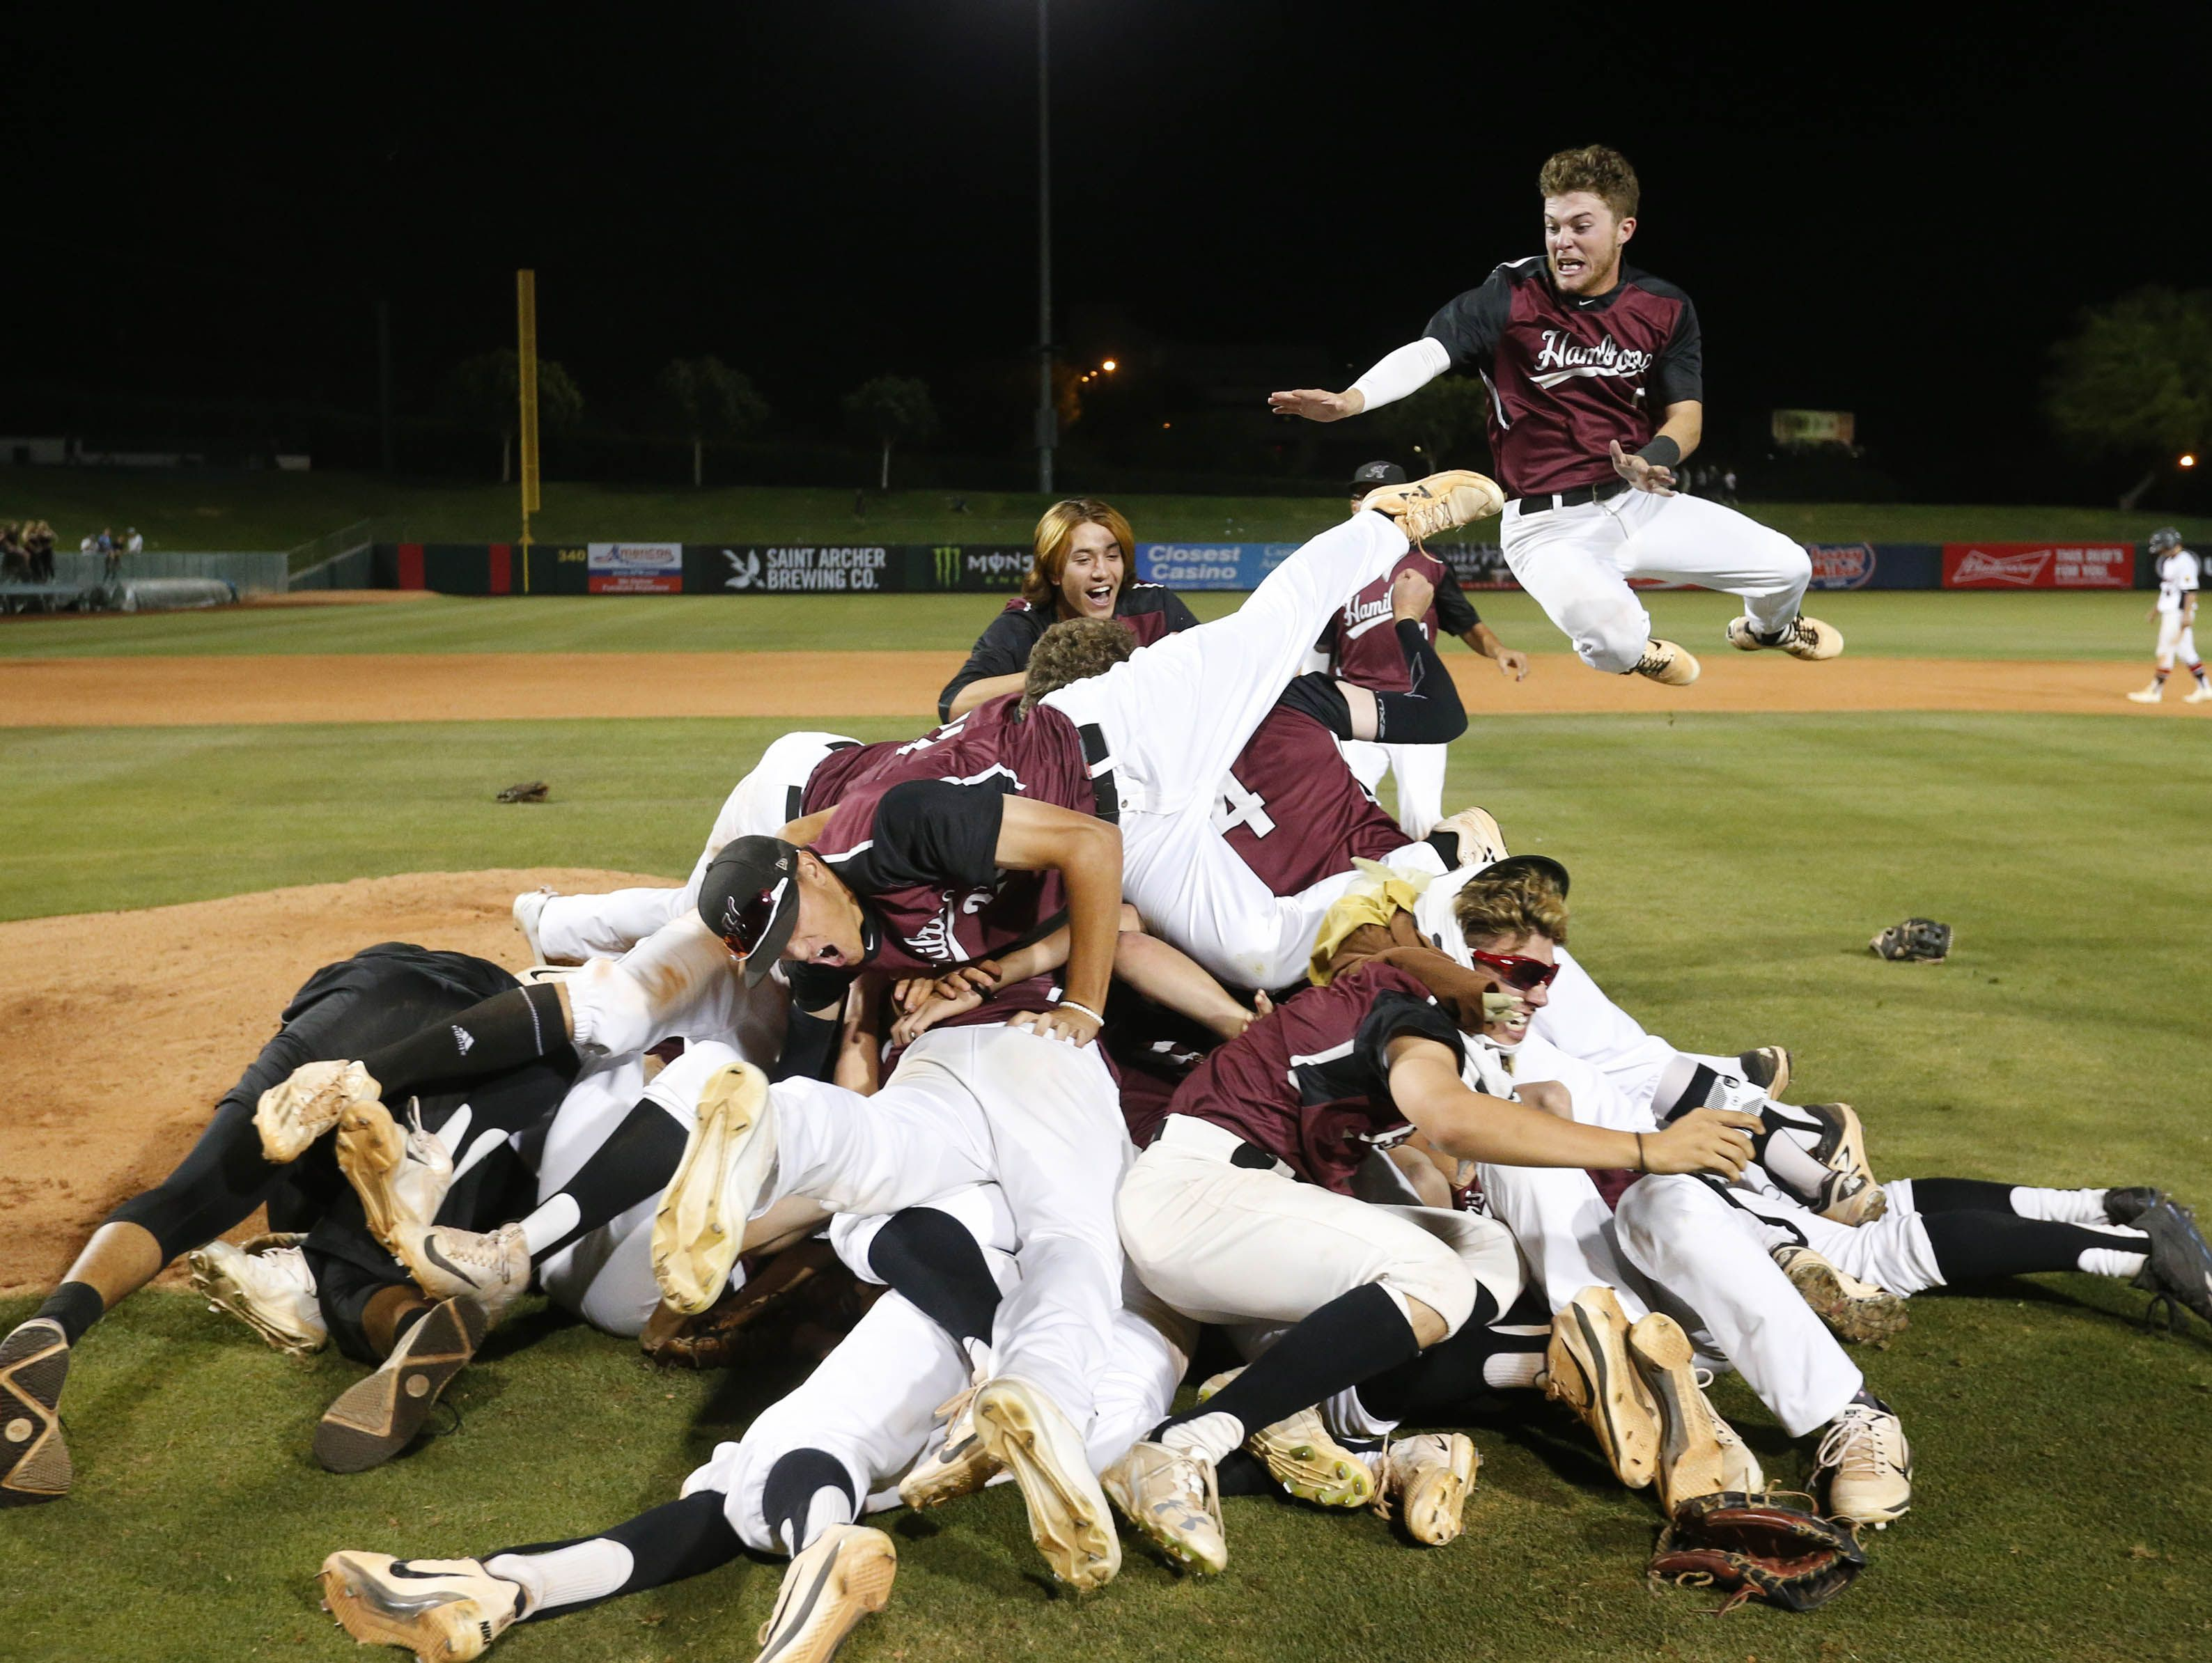 Hamilton players celebrate after beating Pinnacle 6-4 to win the 6A high school baseball state championship in Tempe, Ariz. May 16, 2017.